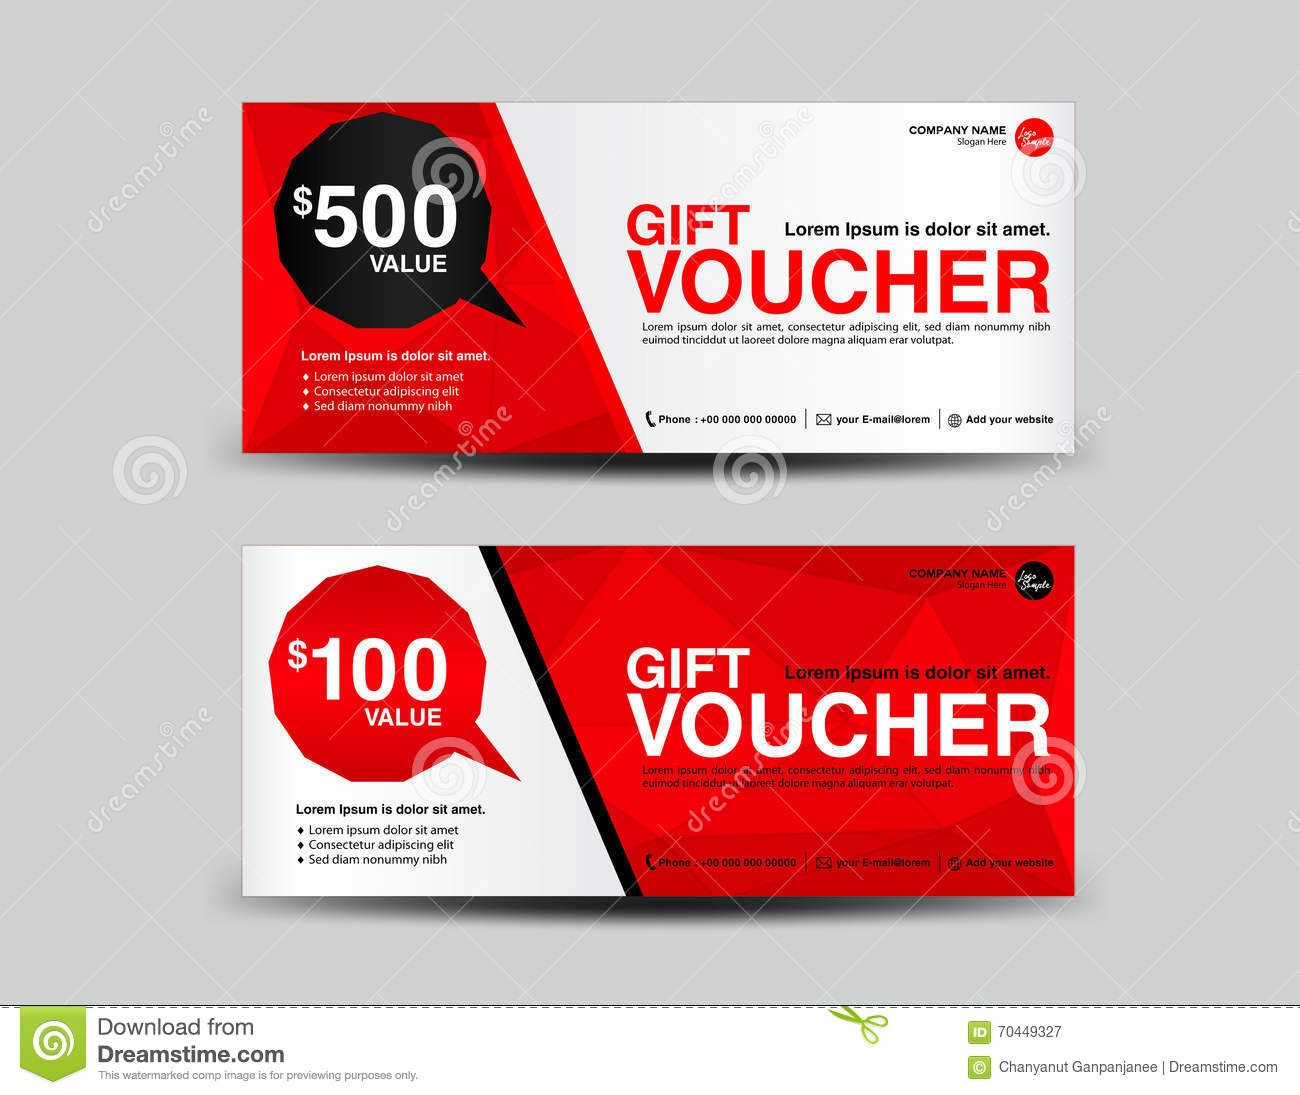 The One4all Gift Card is issued by GVS Prepaid Limited. GVS Prepaid Limited is authorised by the Financial Conduct Authority under the Electronic Money Regulations (register reference ) for the issuing of electronic money.